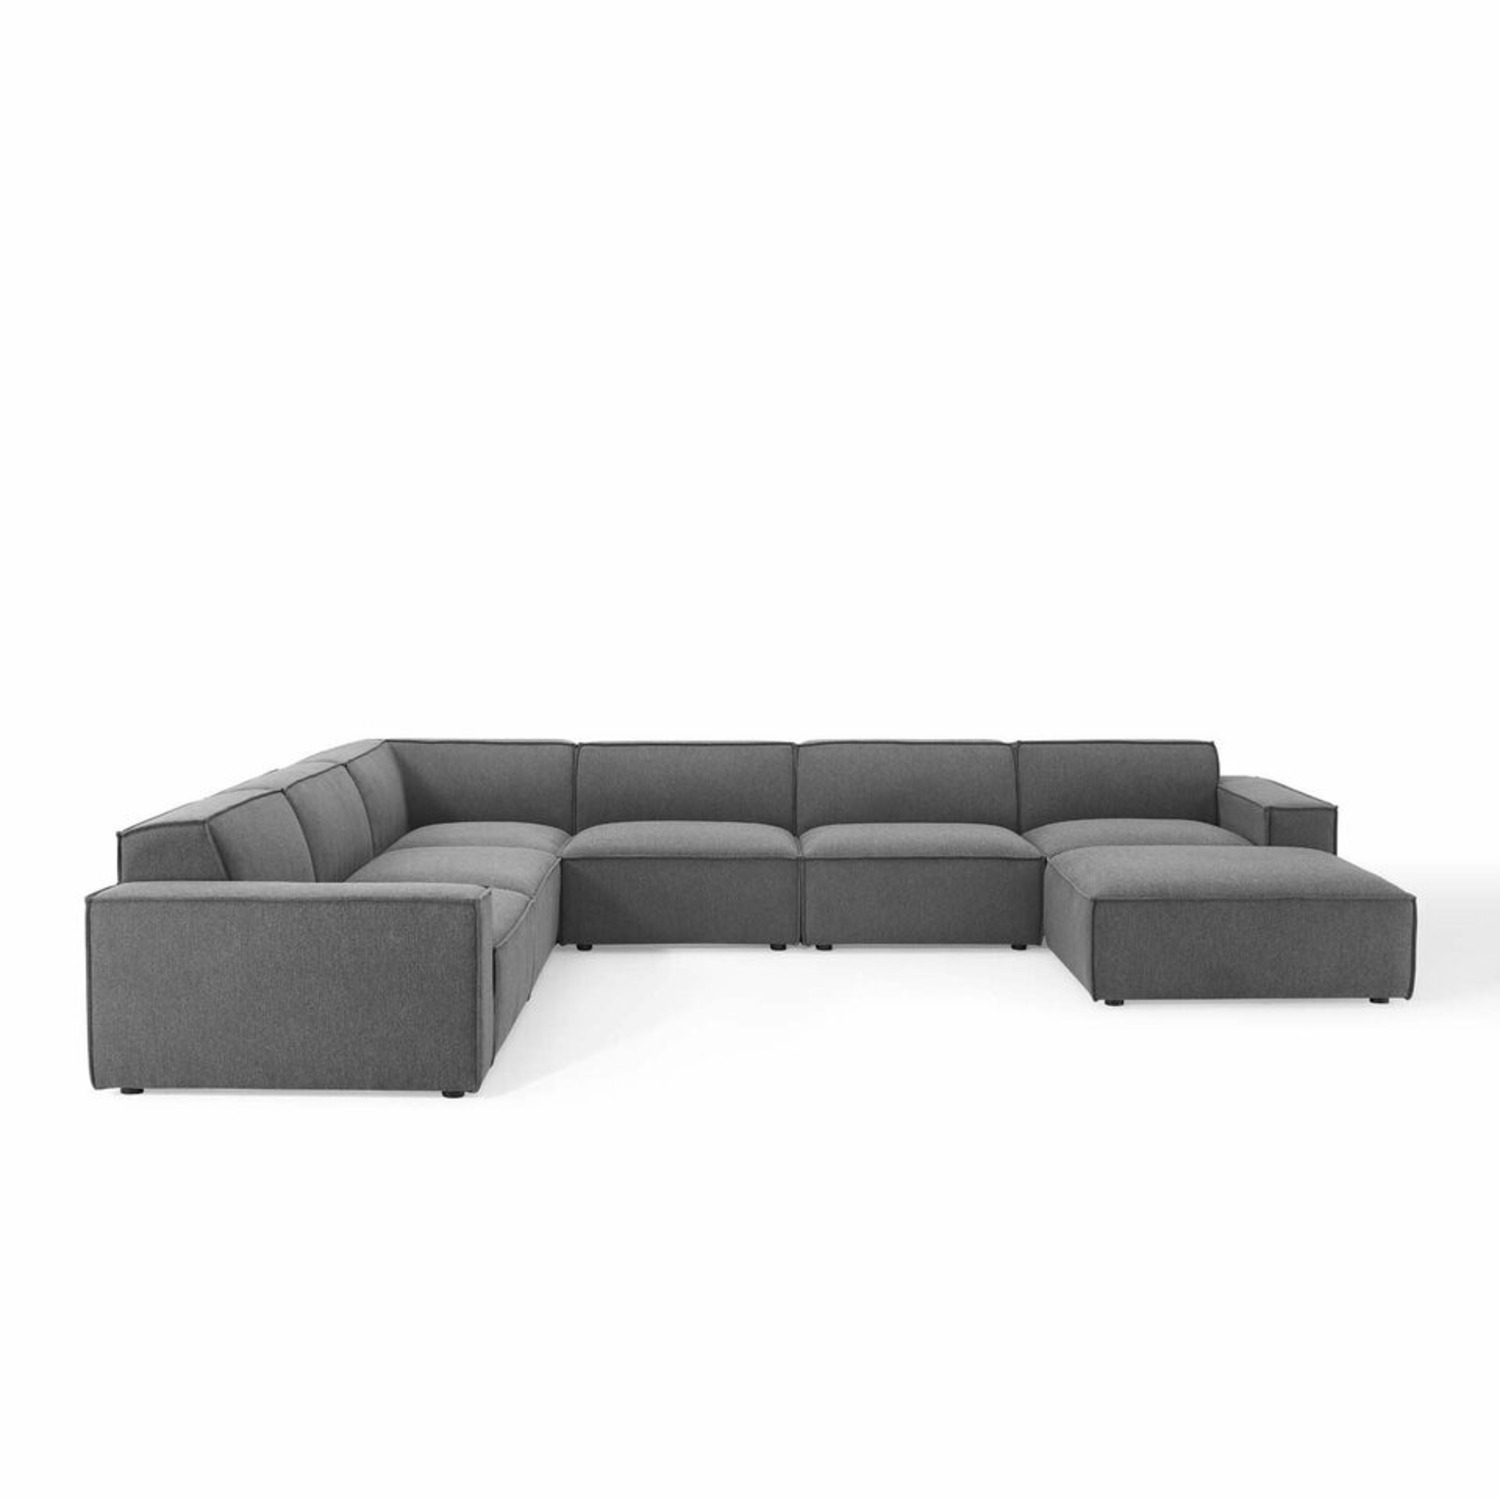 7-Piece Sectional Sofa In Charcoal Upholstery - image-0